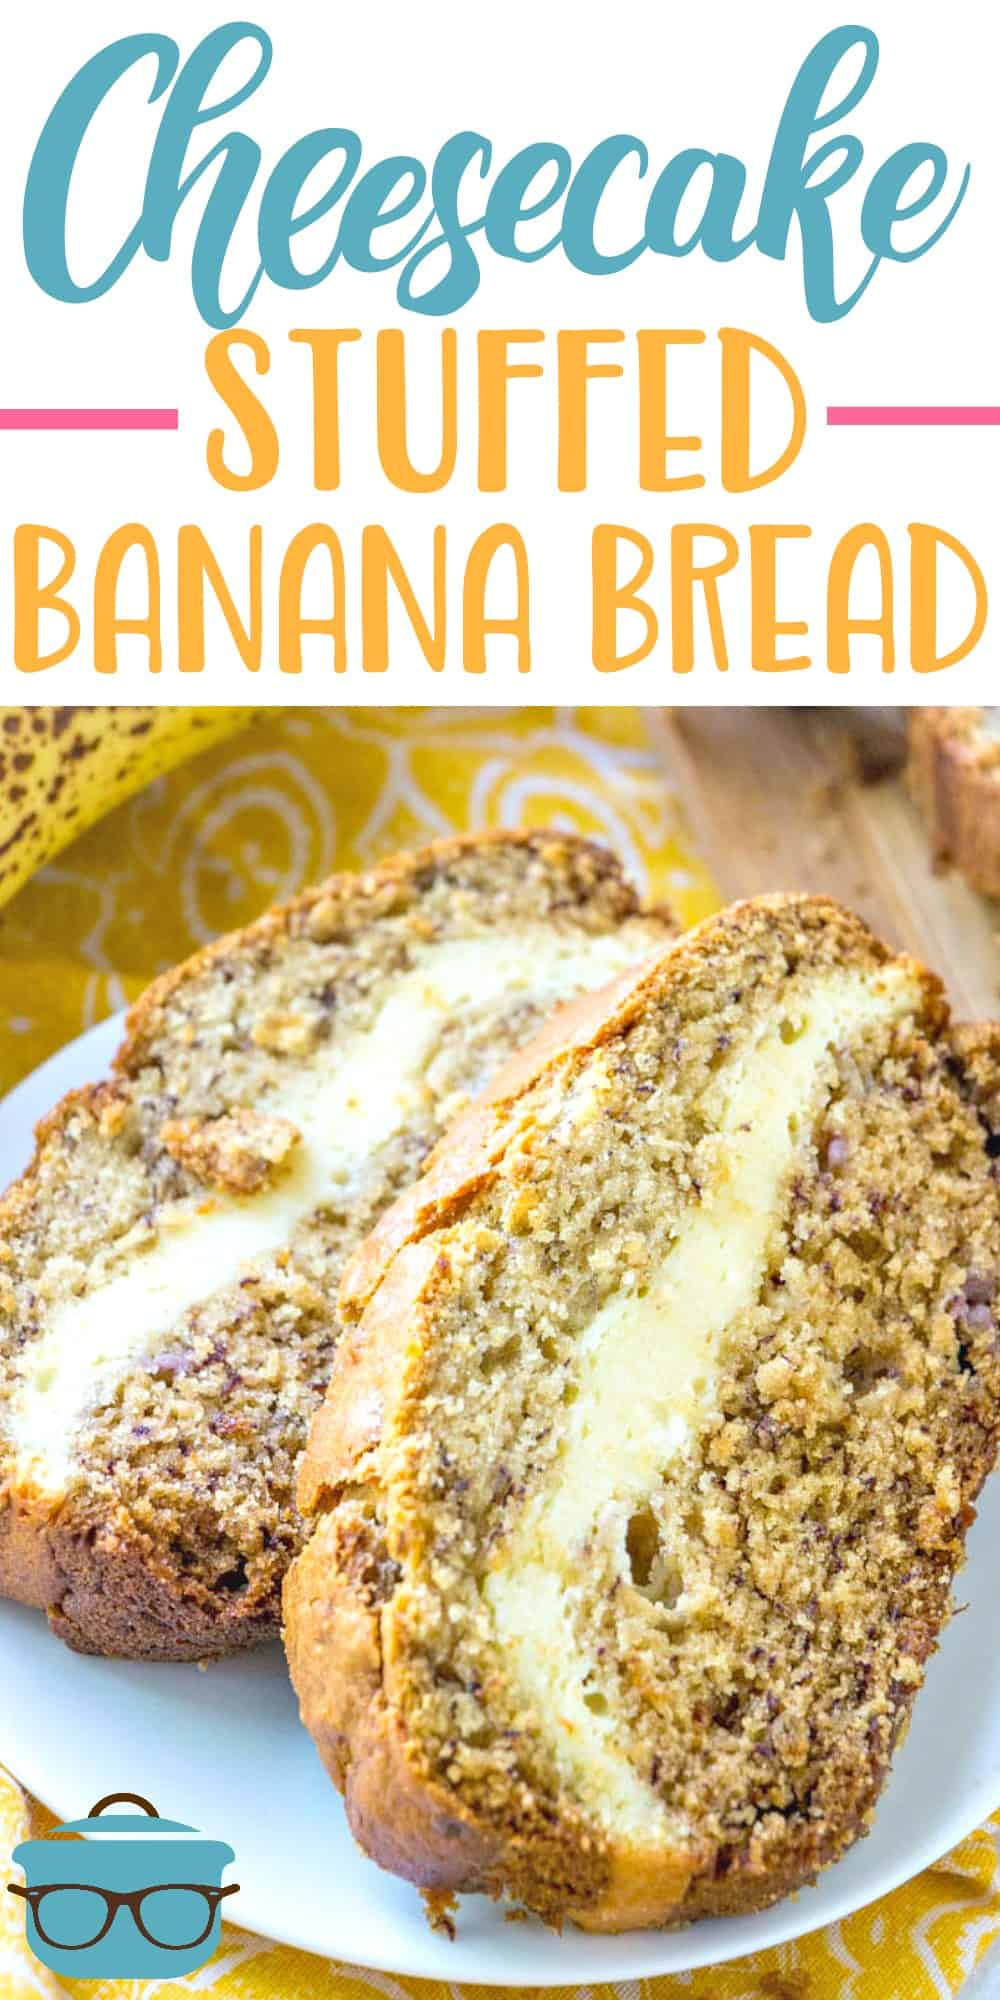 Cheesecake Stuffed Banana Bread is an easy homemade banana bread recipe that has a ribbon of cheesecake going through the middle. Amazing! #bananabread #cheesecakebananabread